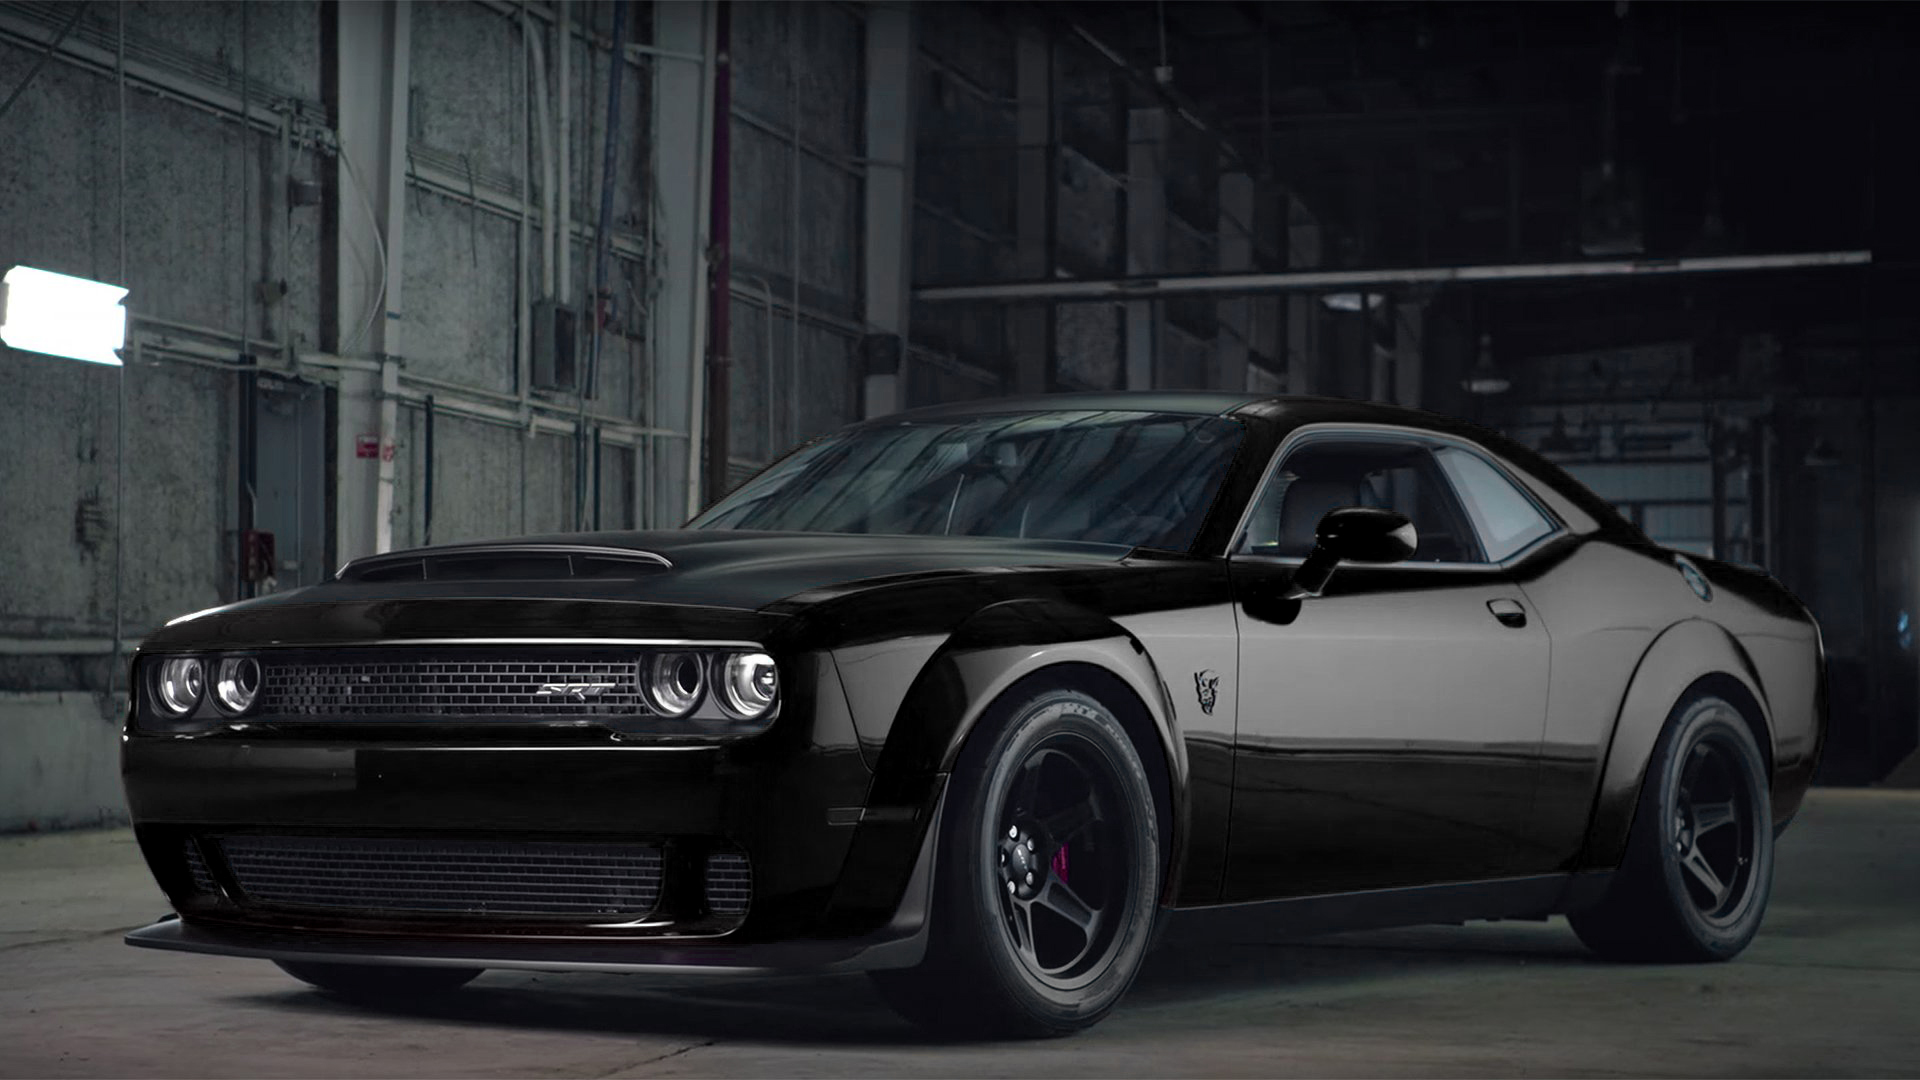 Hd Flat Black Muscle Car Wallpapers Pitch Black W Graphics Pkg Pictures Srt Hellcat Forum